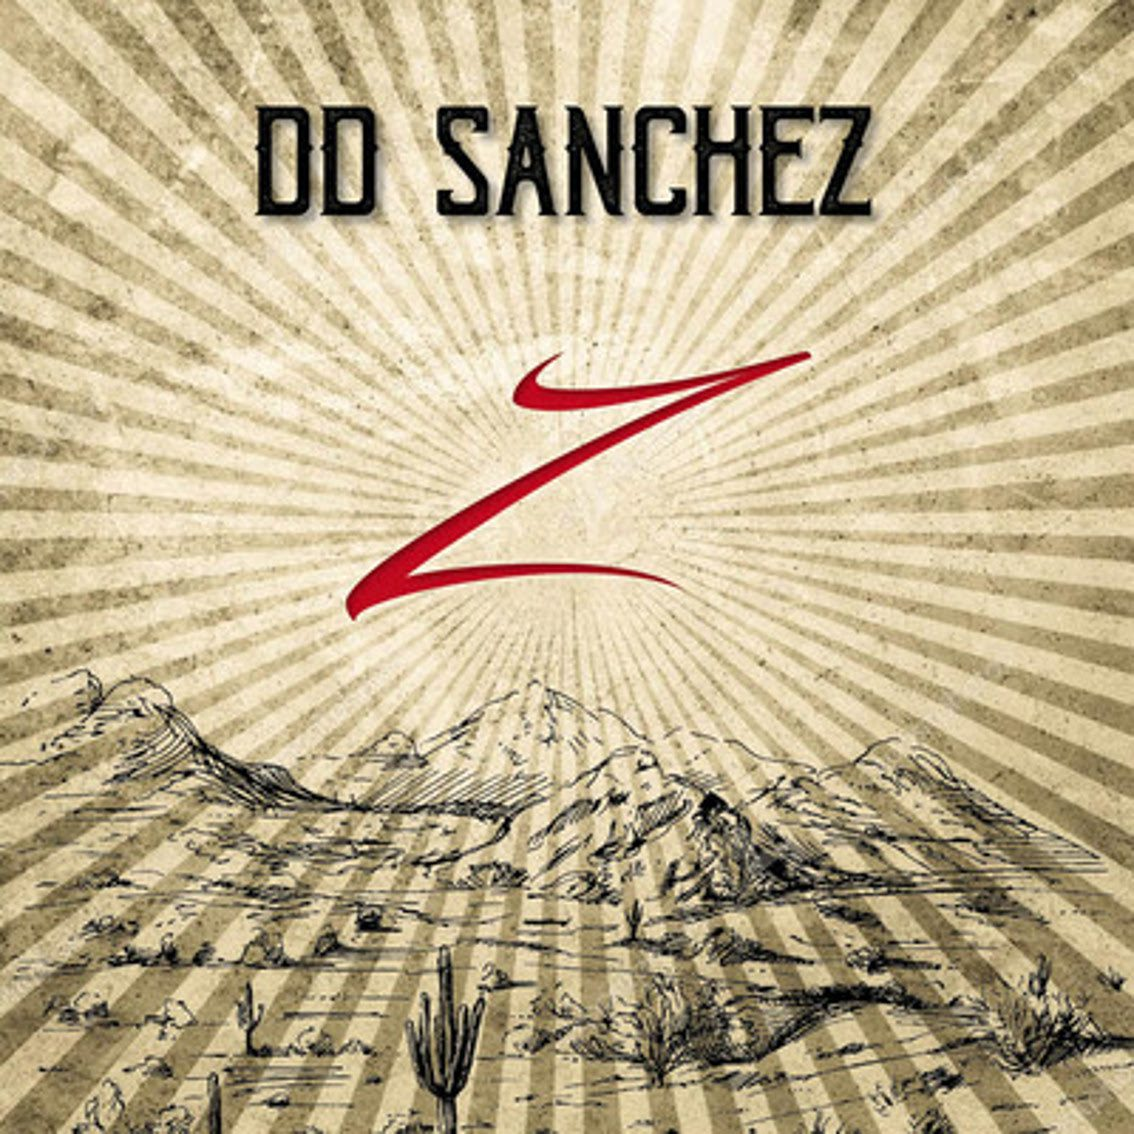 Neon Judgement's Dirk Da Davo launches project with Sanchez: DD Sanchez - 4 track EP out on july 15th